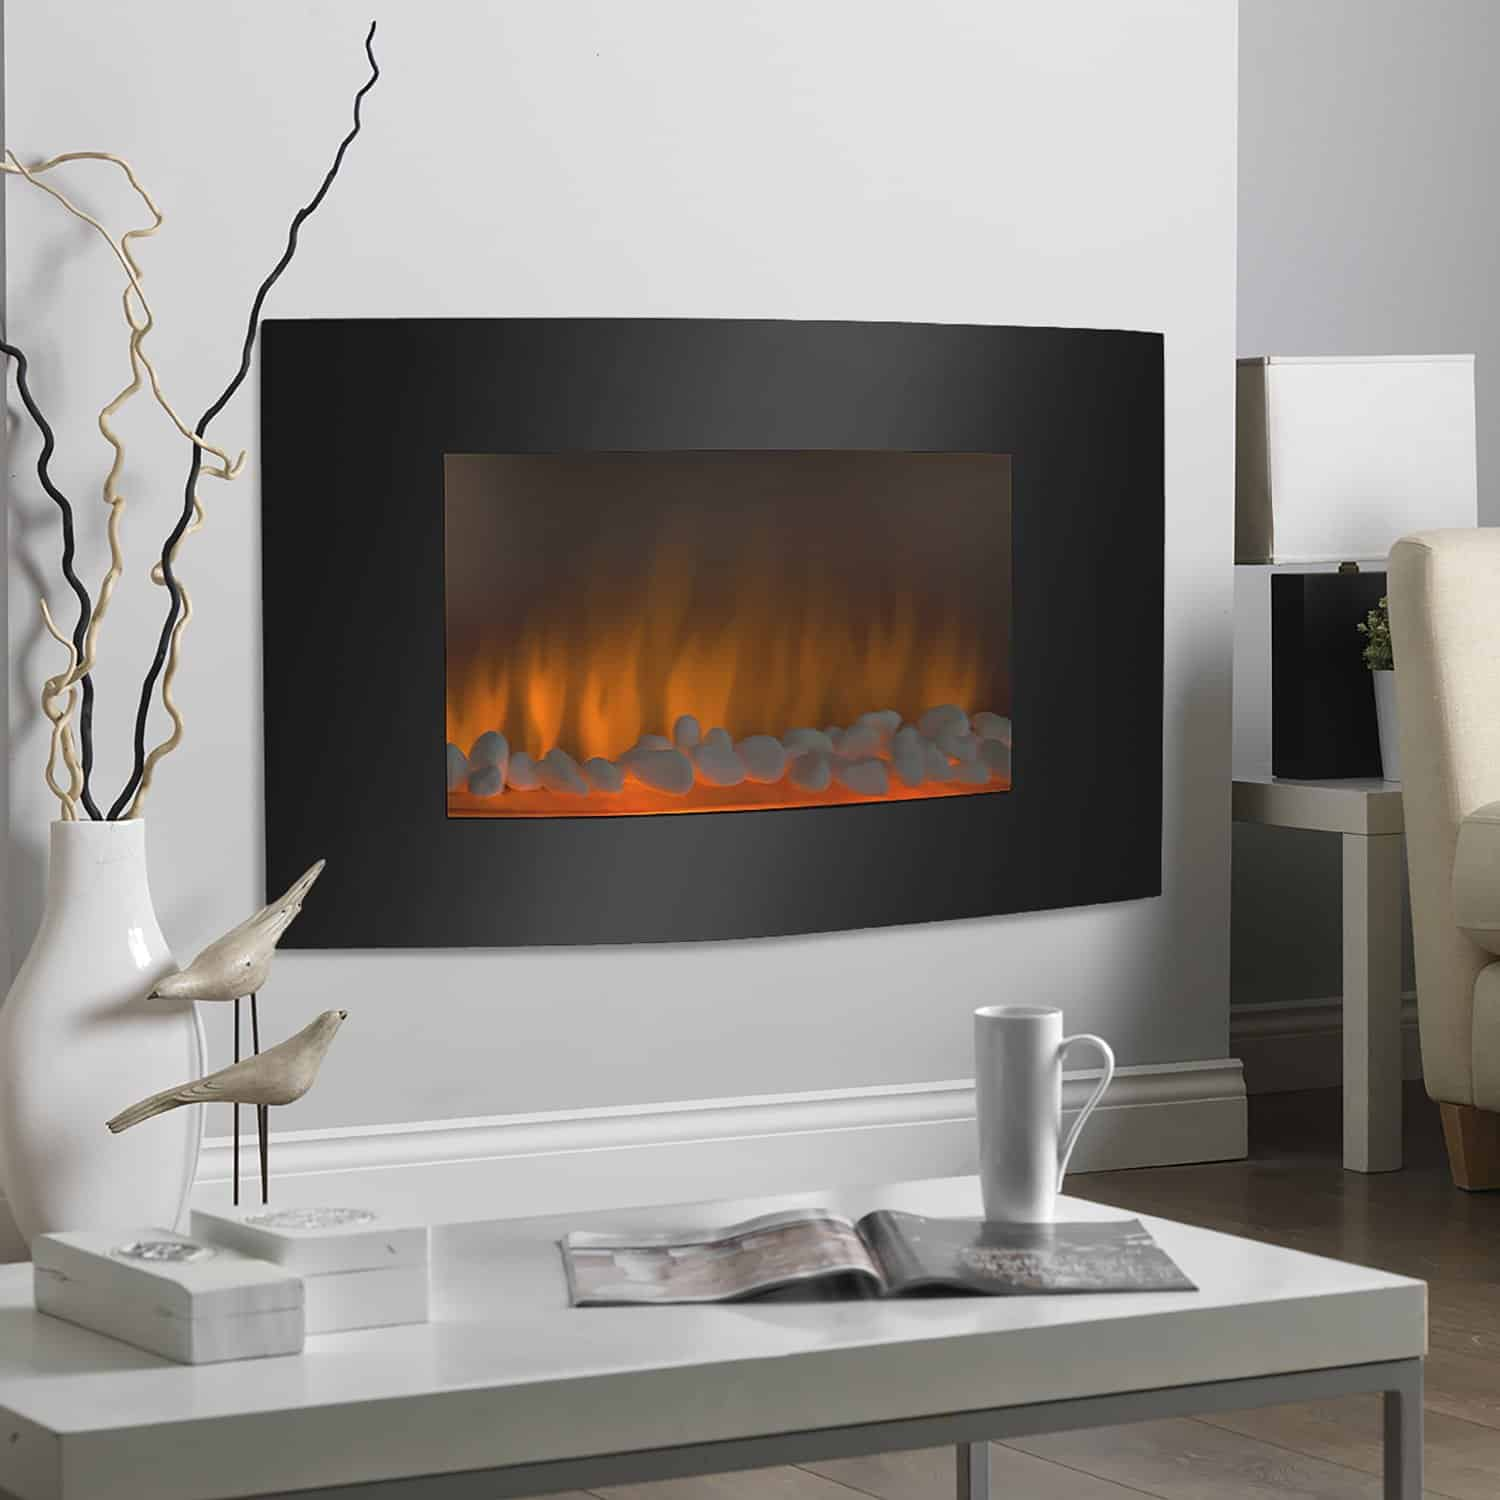 Electrical Home Design Ideas: Pros & Cons: Modern Electric Fireplaces VS Ethanol